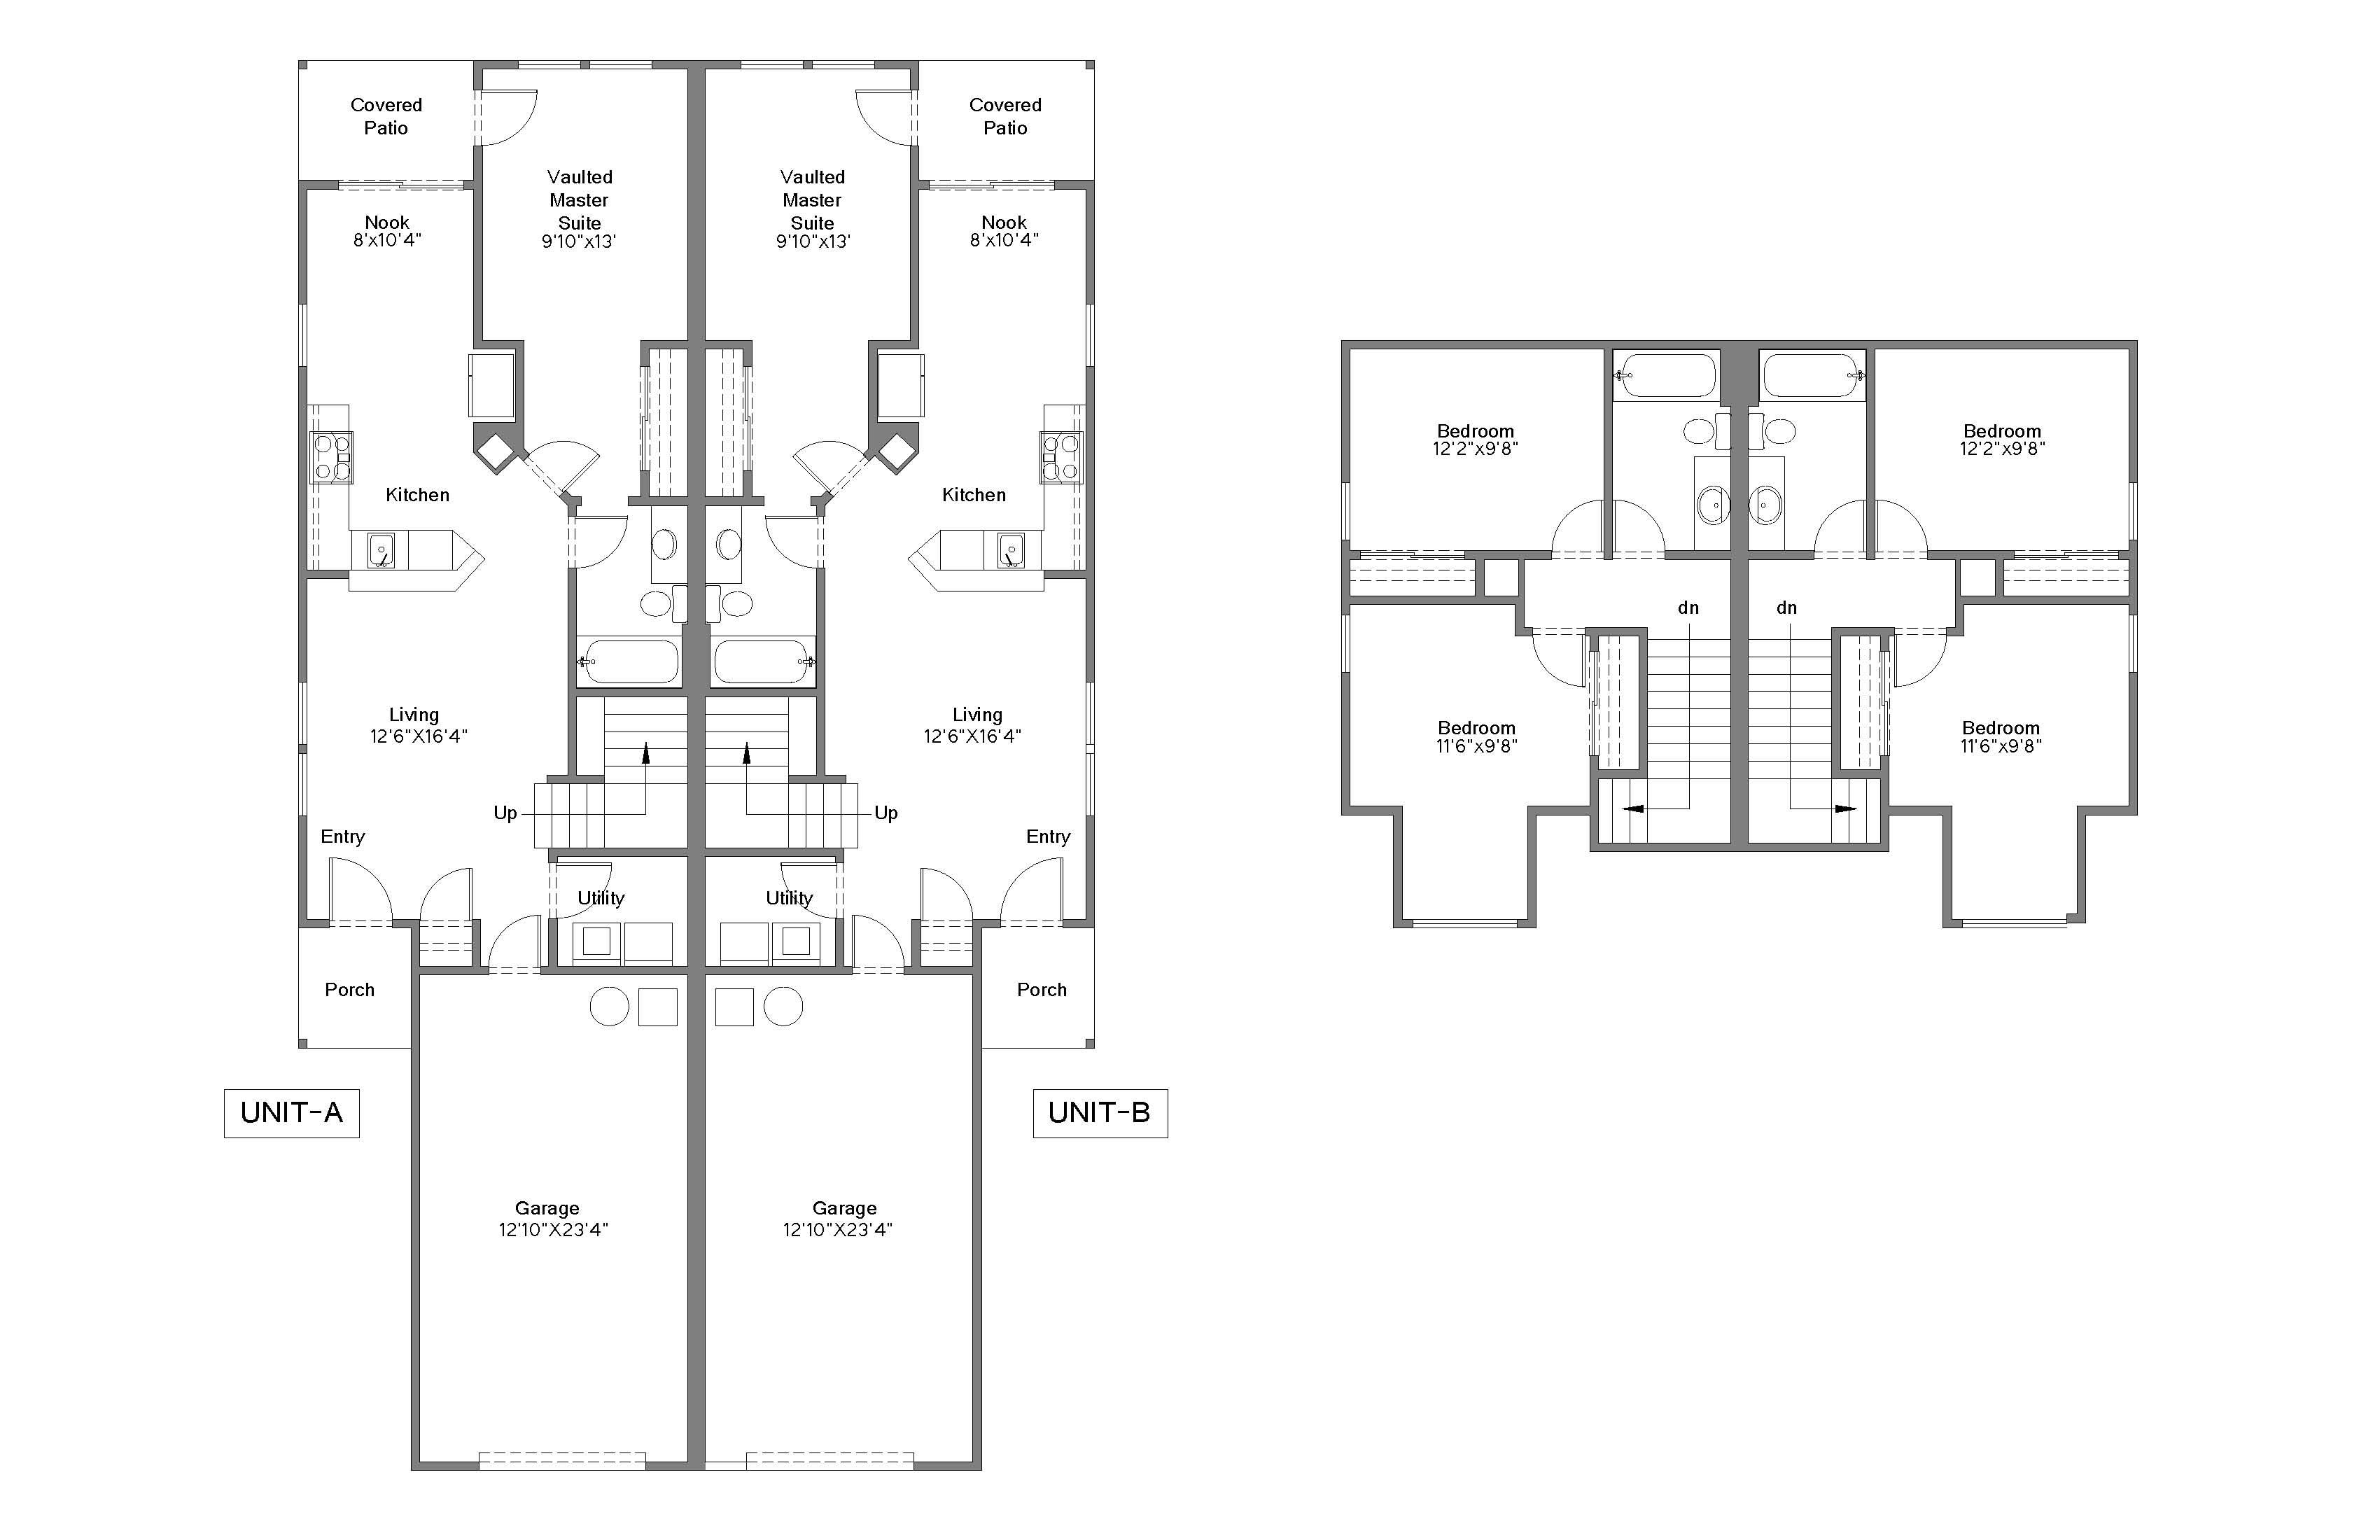 Architectural floor plan floor plan with autocad drawings for Home architecture cad